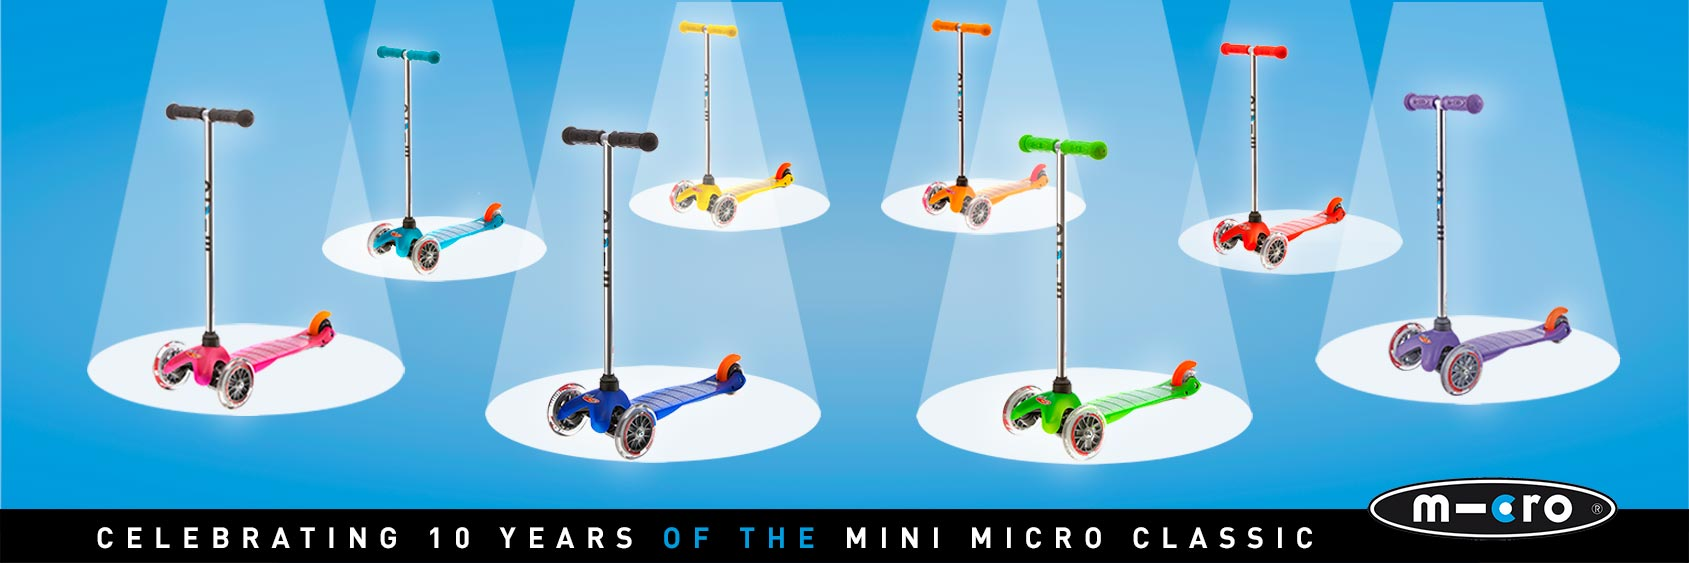 Celebrating 10 years of the Mini Micro Classic